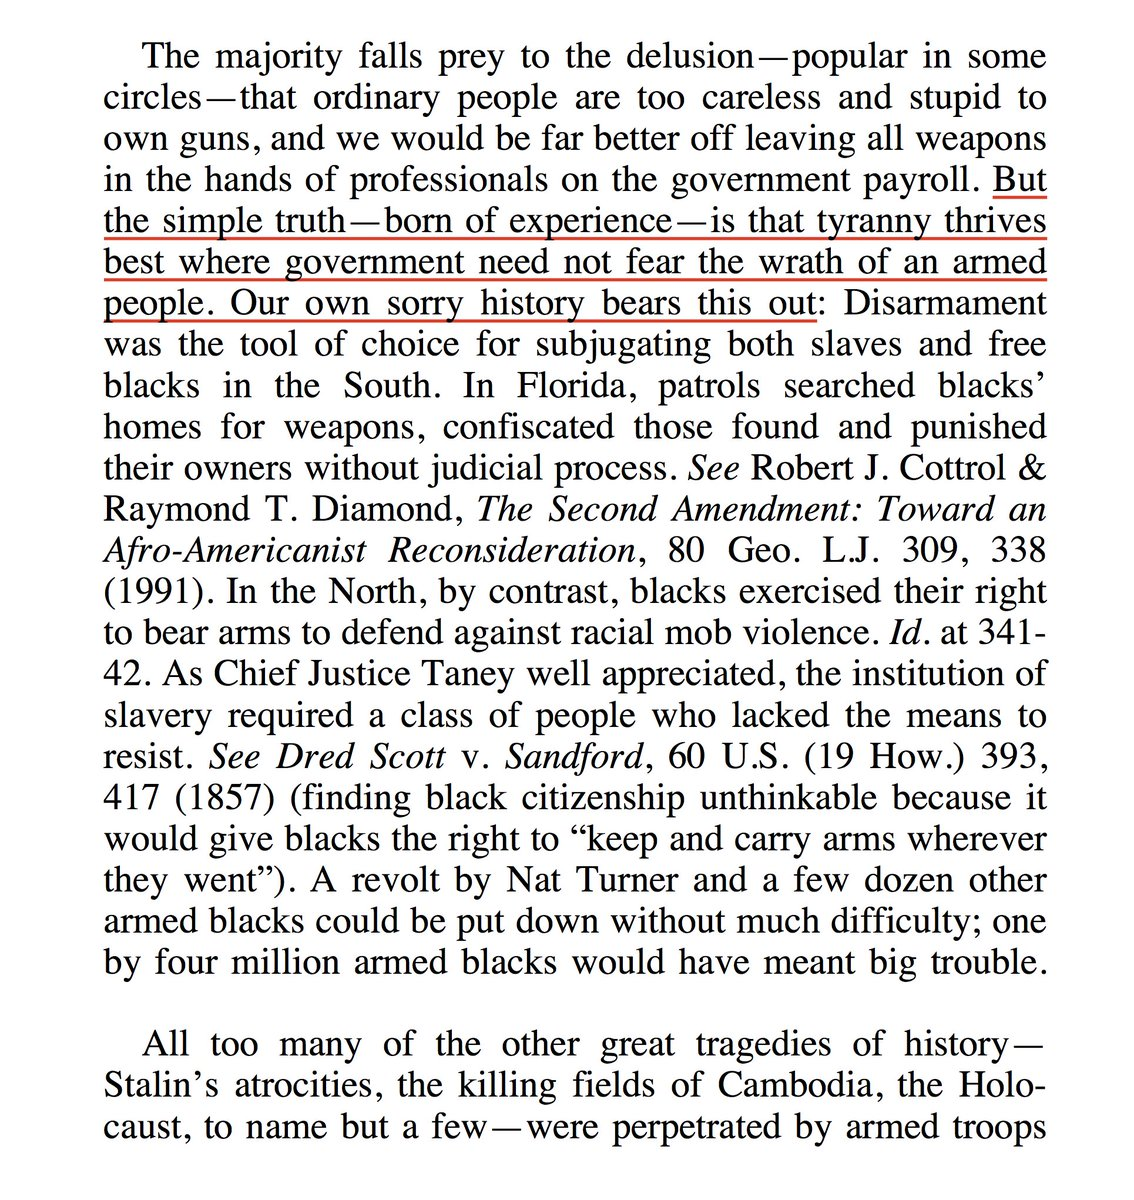 History, History, History! Learn from it. RT @PoliticalShort: Those wanting to repeal the Second Amendment should read Judge Kozinski's Dissenting Opinion in Silveira v. Lockyer http://keepandbeararms.com/silveira/EnBancOrder.pdf …